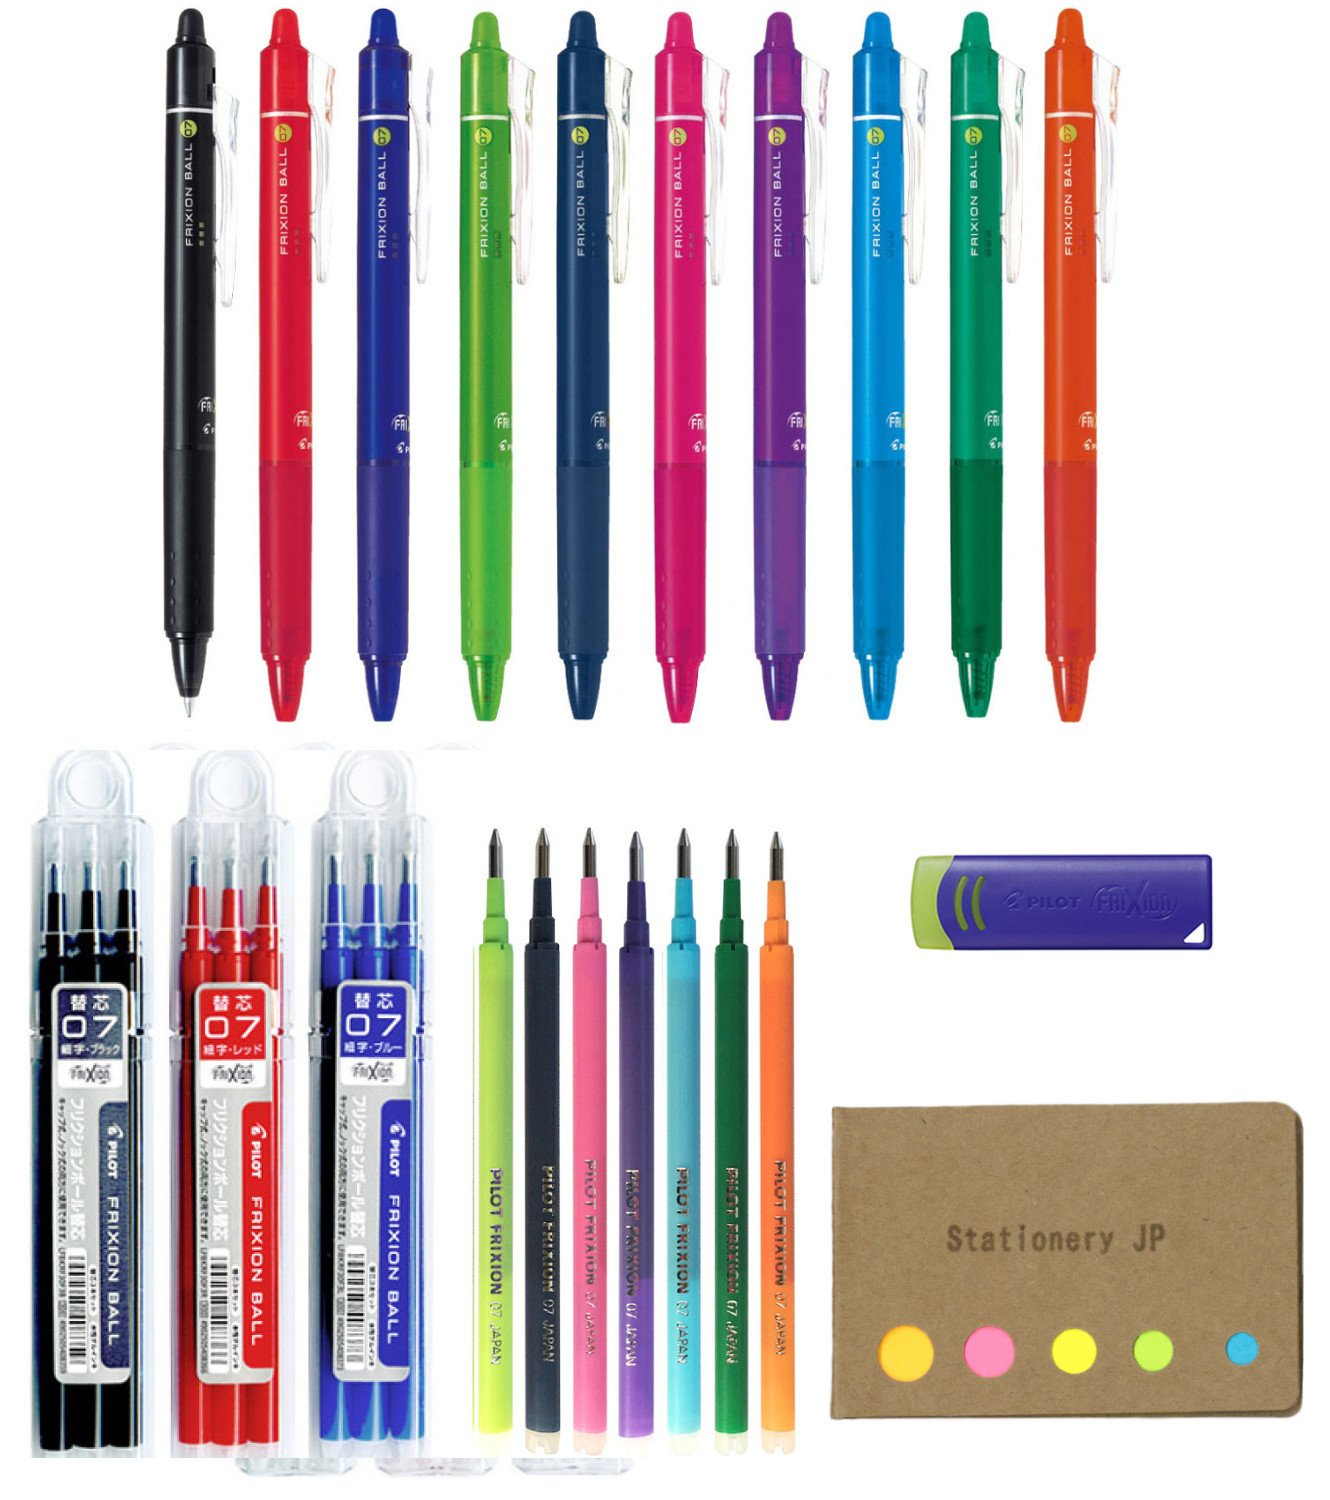 Pilot FriXion Ball Knock Retractable Gel Ink Pen, Fine Point 0.7 mm, 10 Colors, Refills for Frixion 0.7mm 16 total, Frixion Eraser, Sticky Notes Value Set by Stationery JP (Image #1)